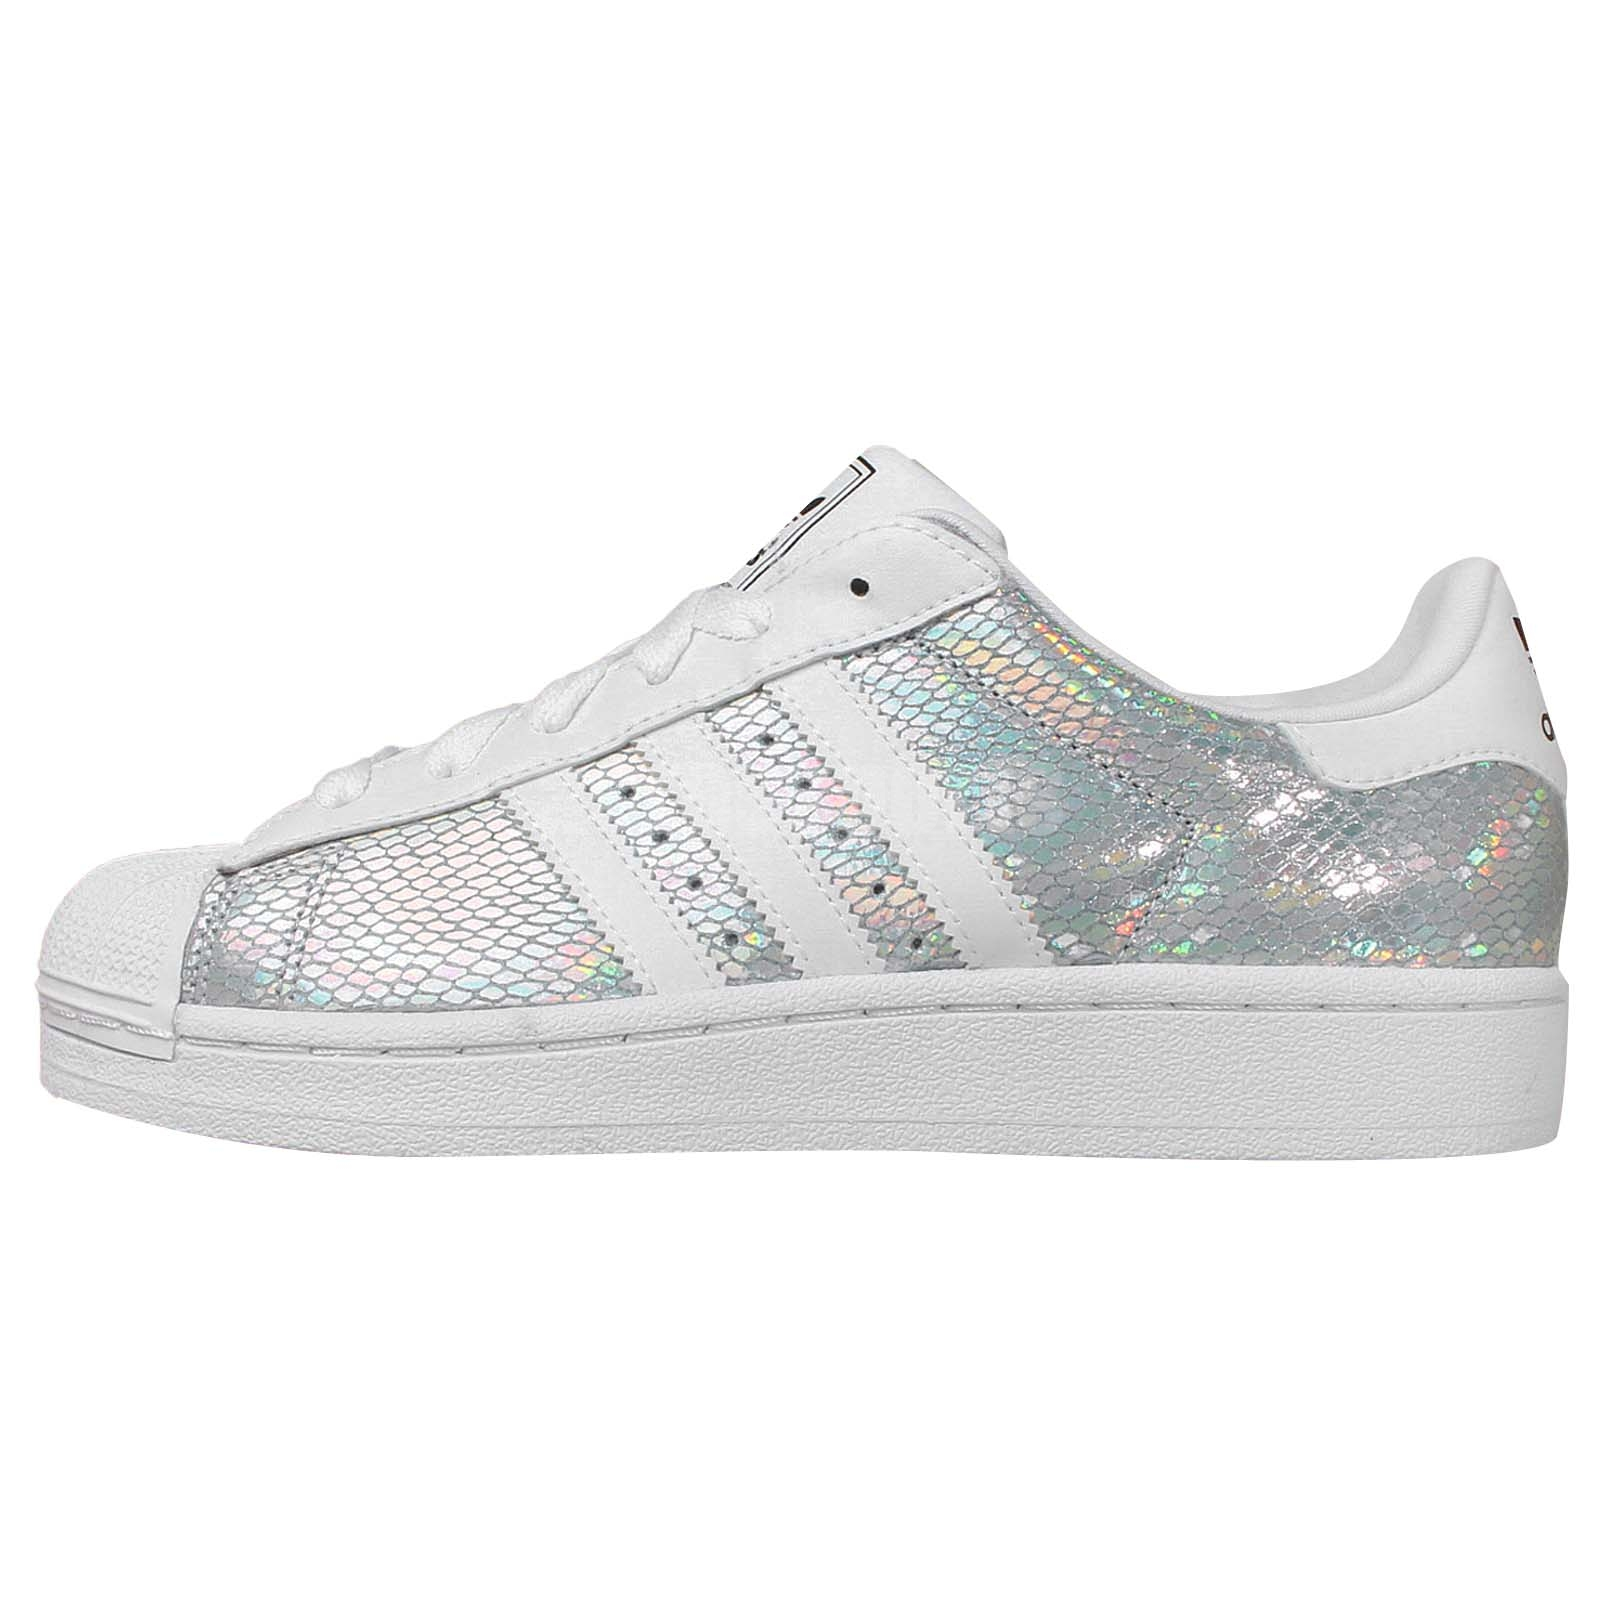 Adidas Originals Superstar 2 W Silver White Womens Casual ...